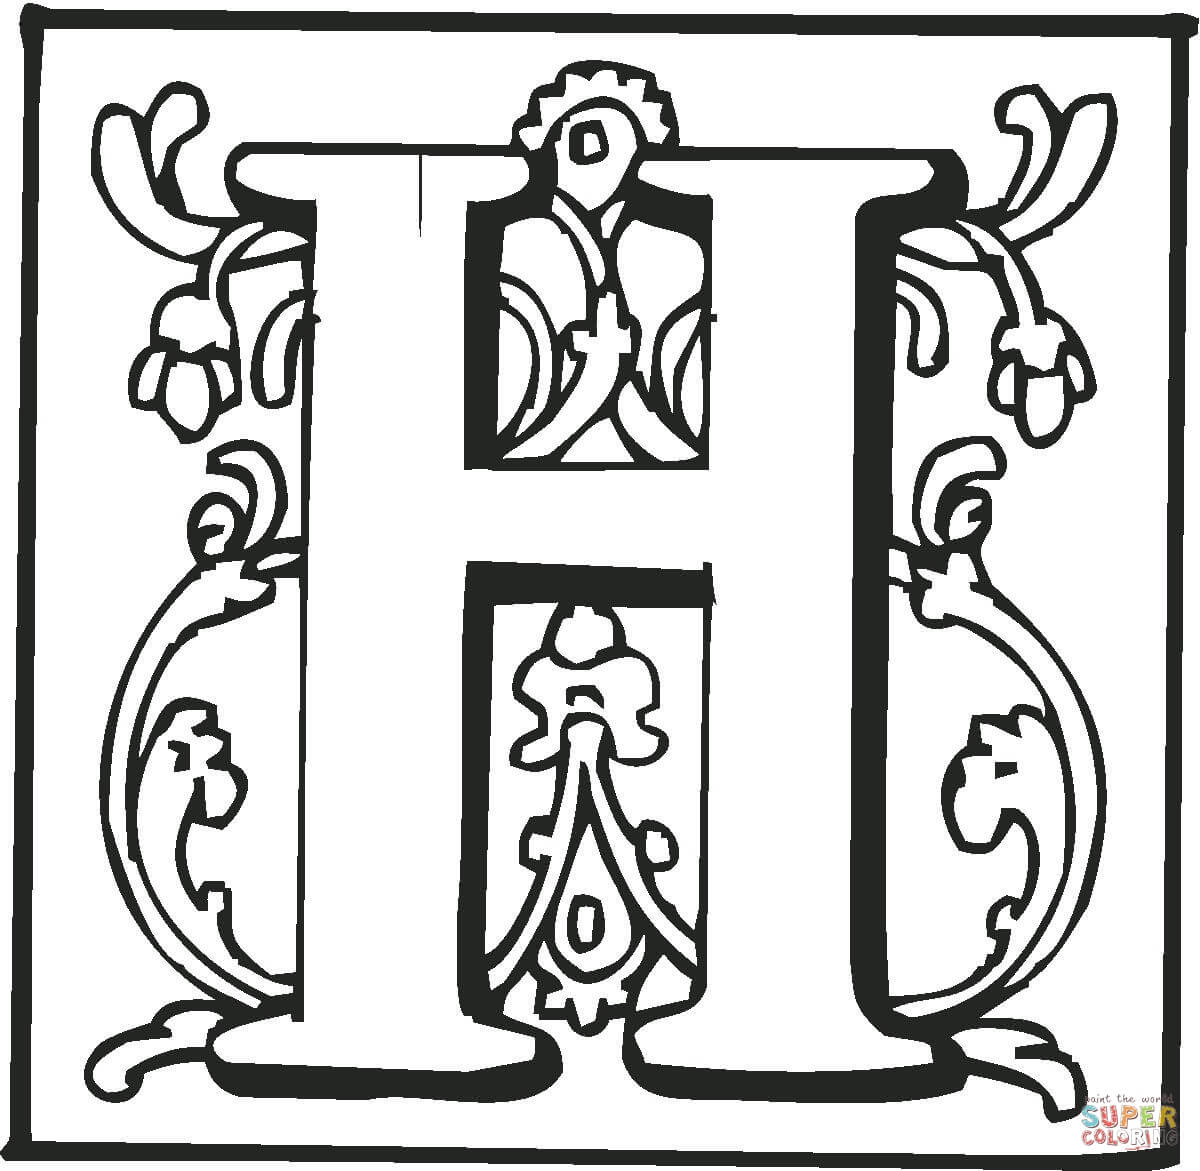 Letter A Coloring Pages | Free download best Letter A Coloring Pages ...